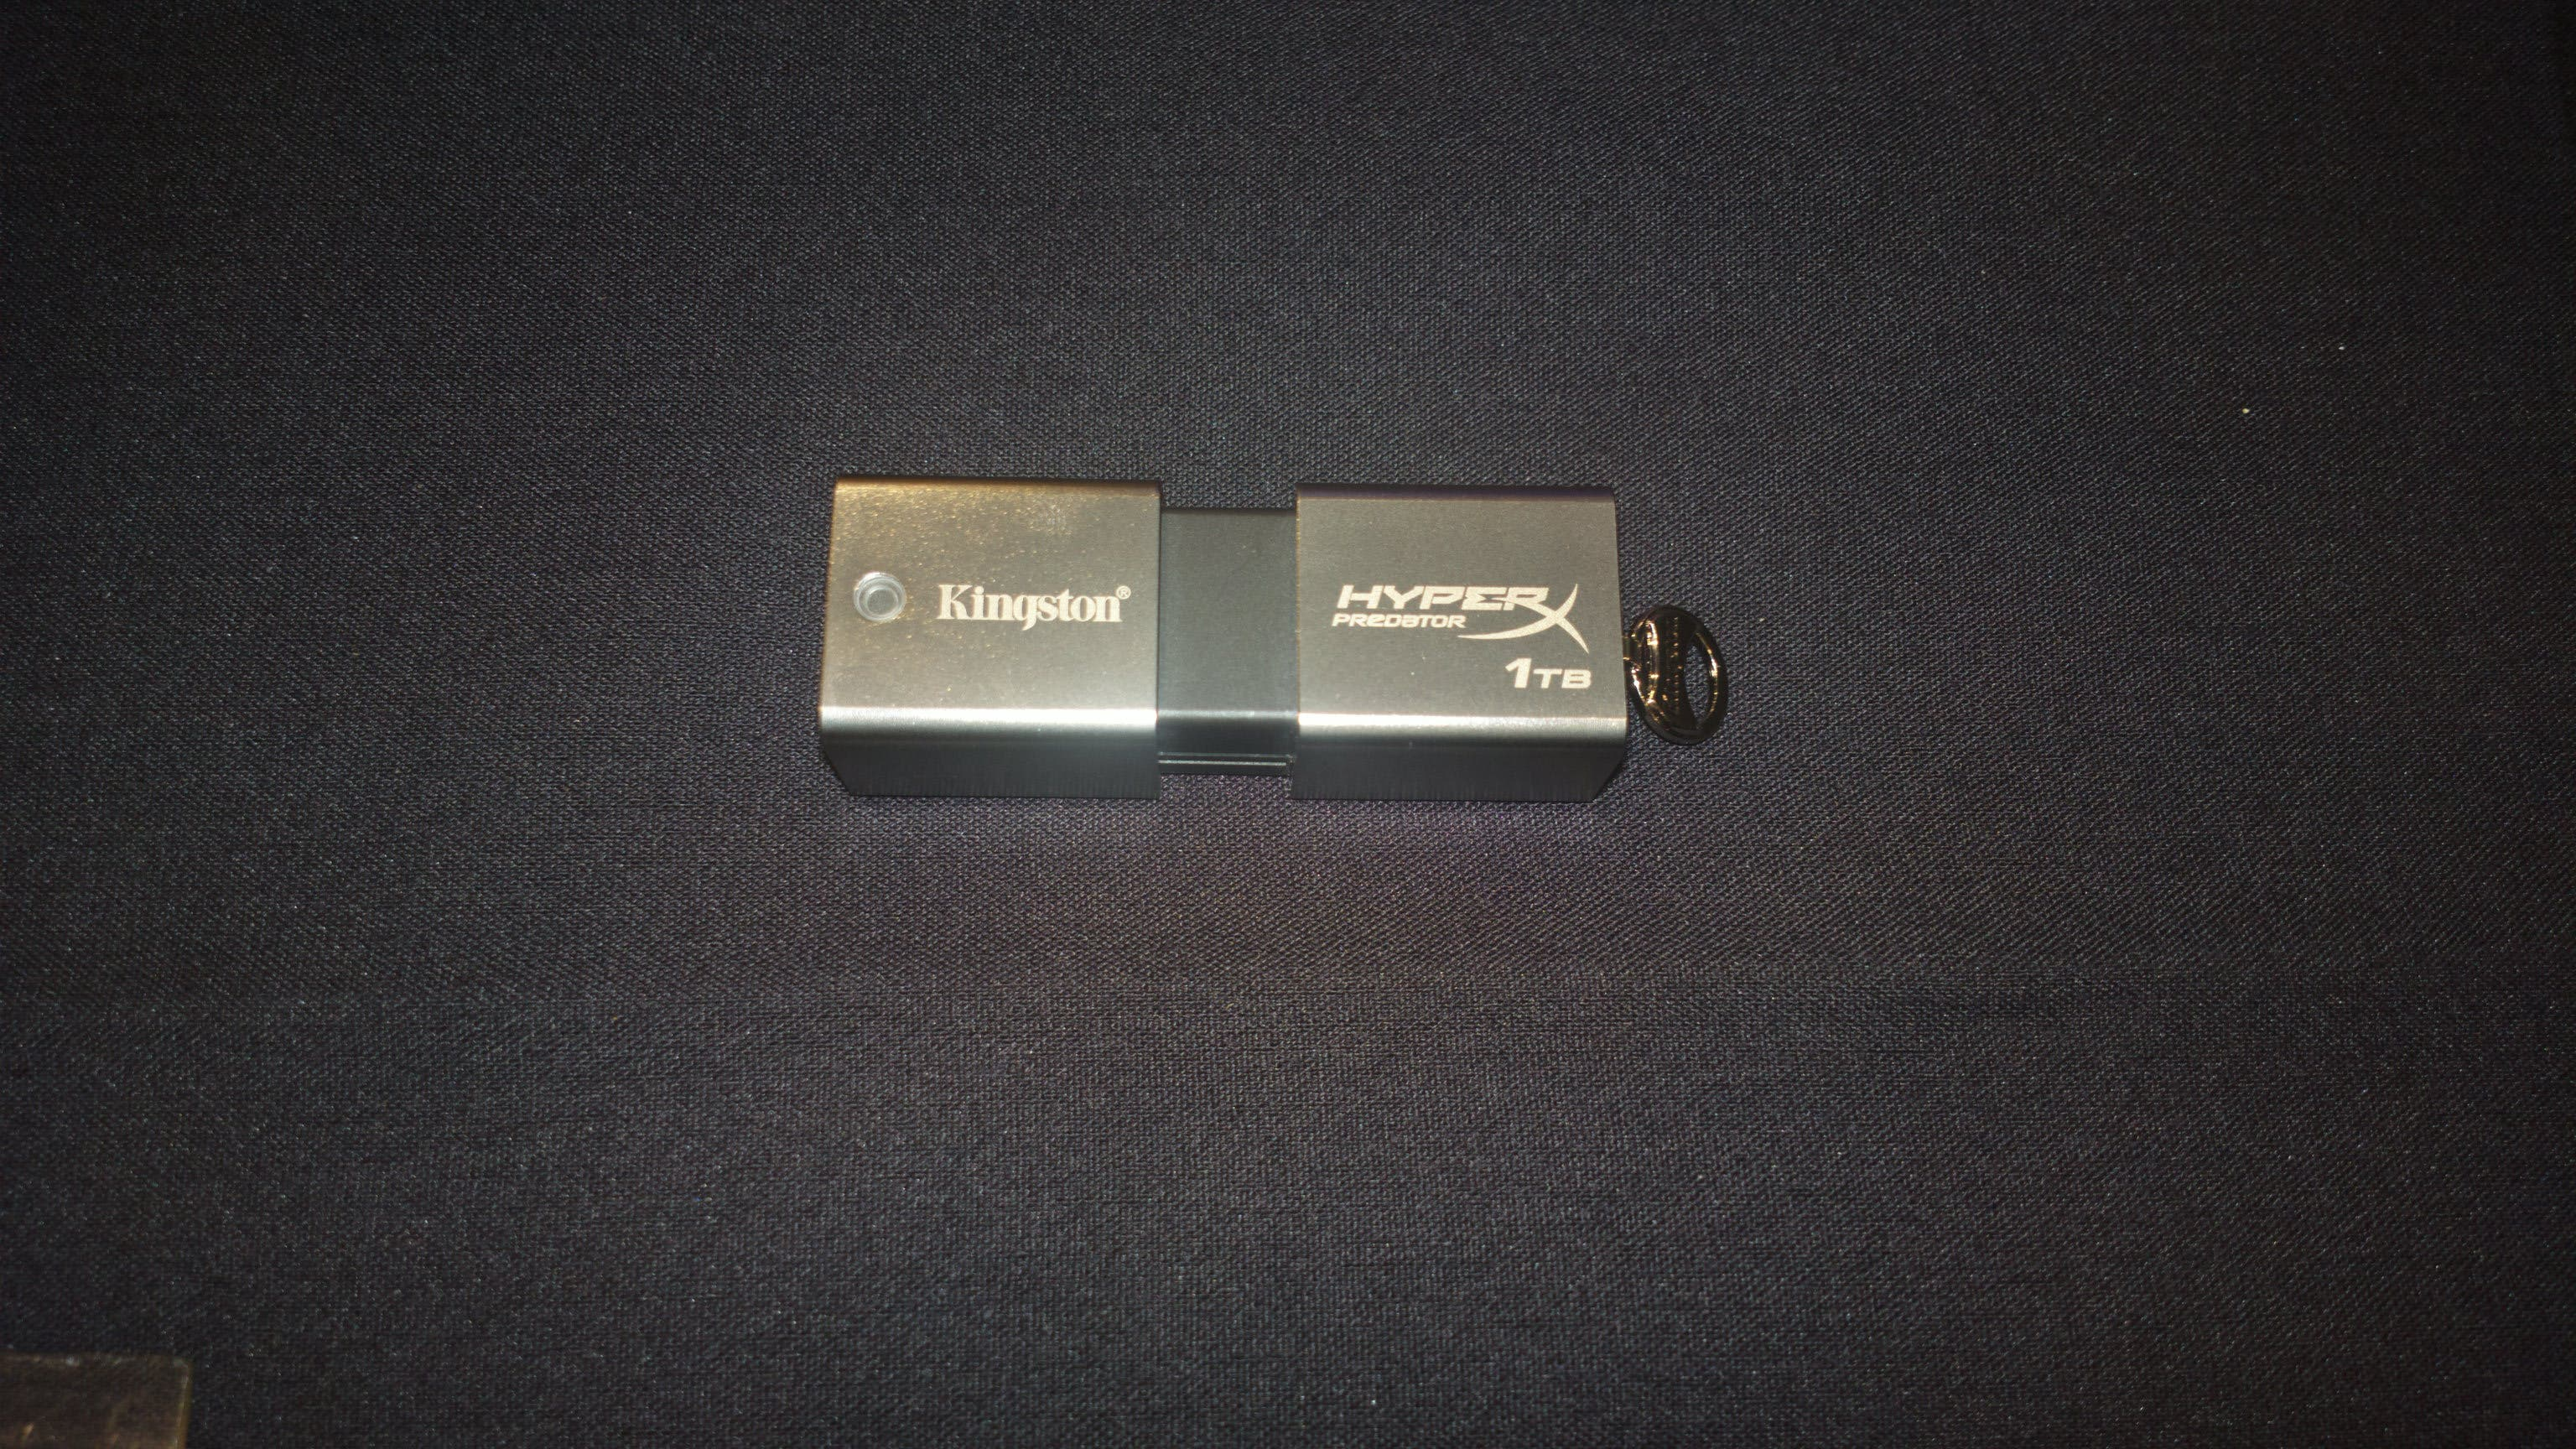 Kingston 1TB Stick